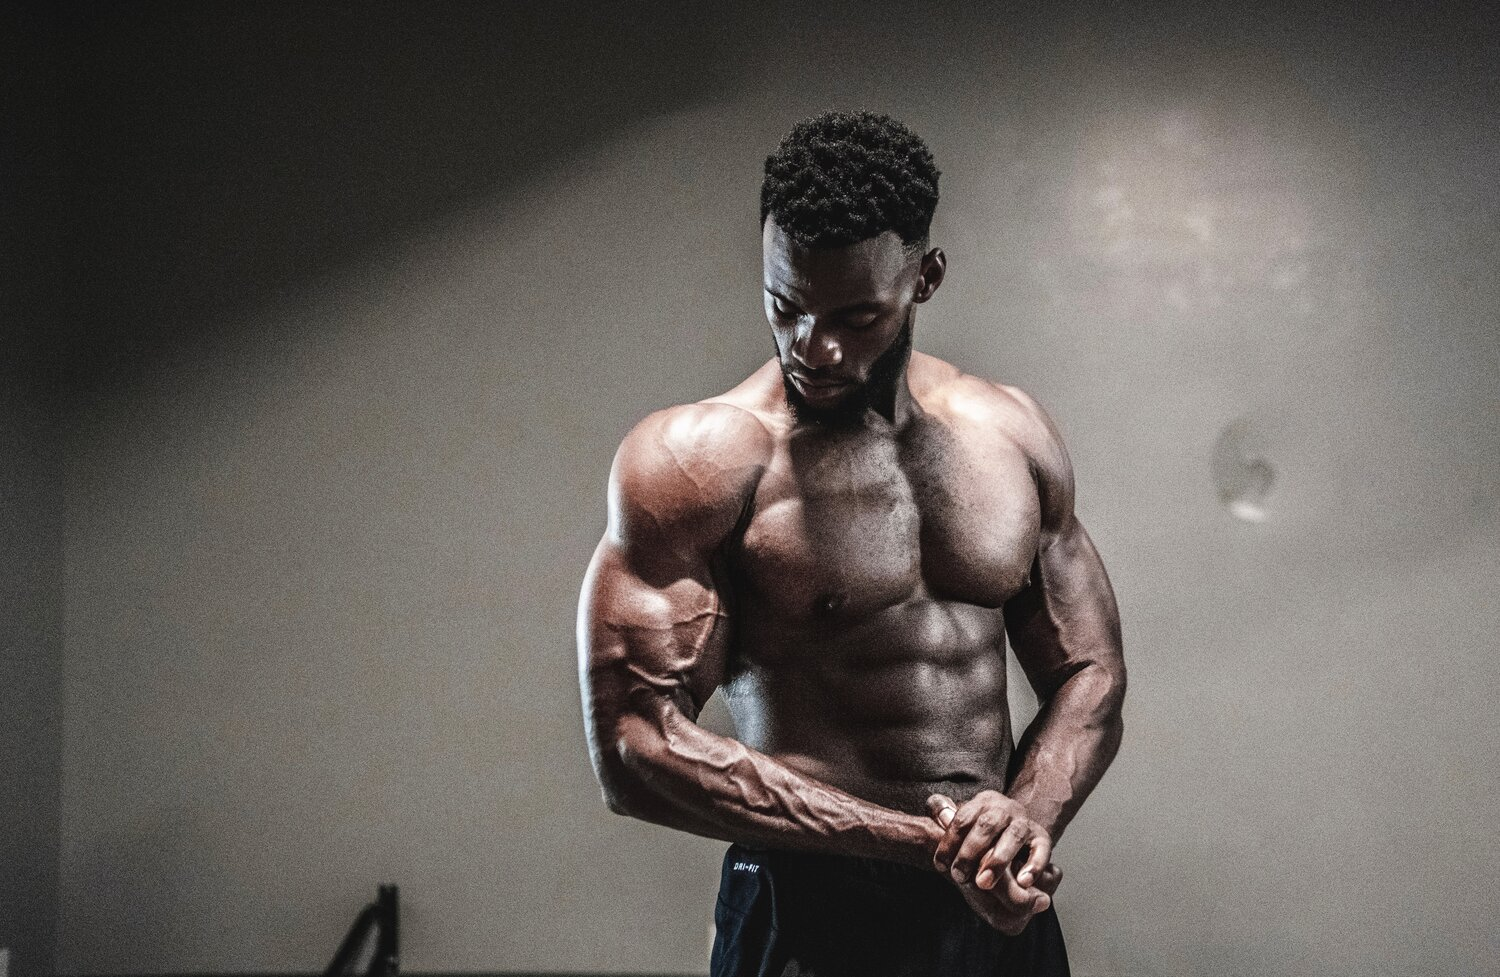 IS HGH AN EFFECTIVE ANTI-AGING DRUG? — Evolve Further